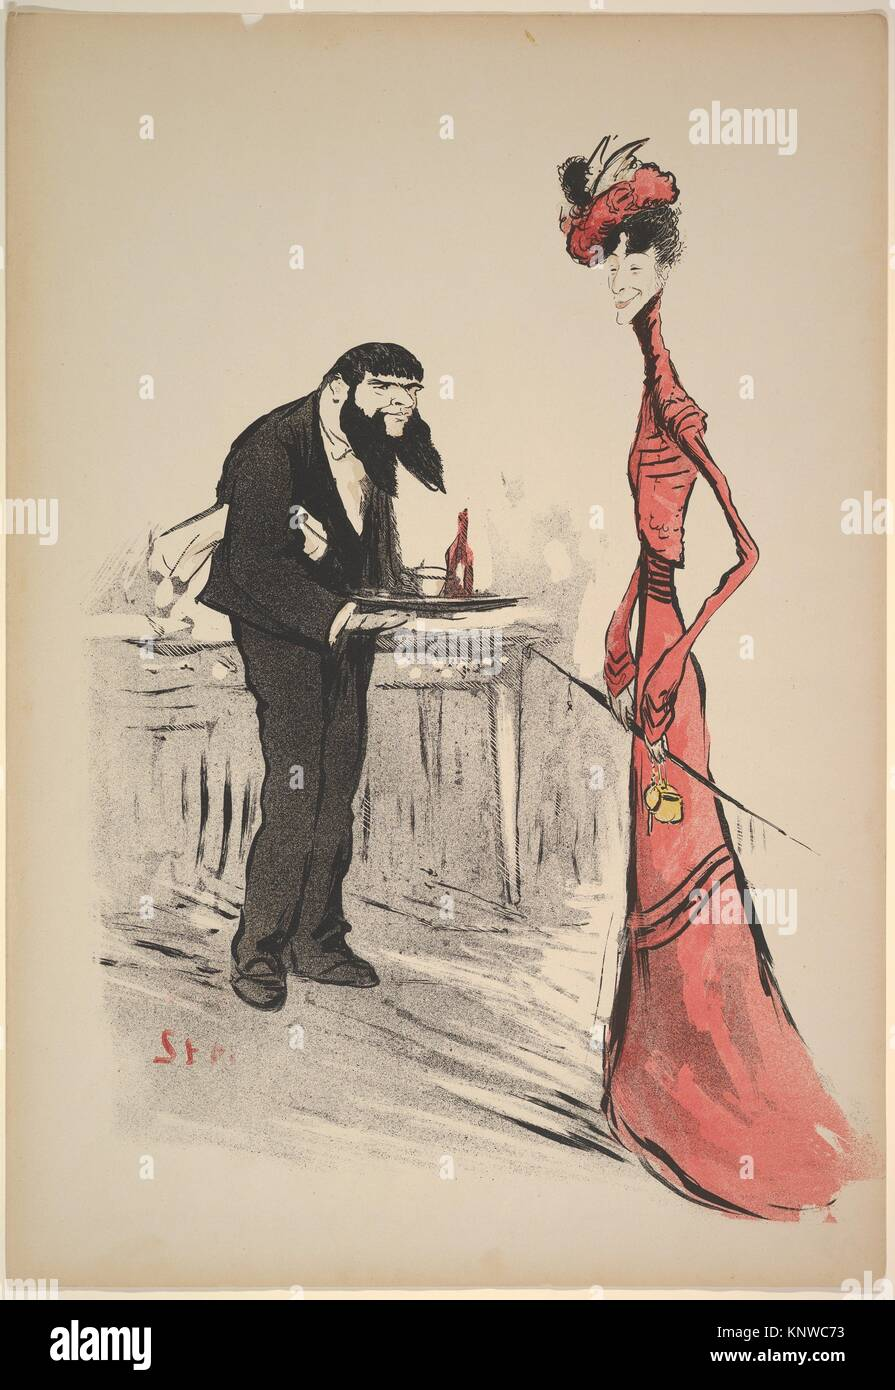 A Woman in Red and a Waiter with a Forked Beard. Artist: Georges Goursat [Sem] (French, Perigueux 1863-1934 Paris); - Stock Image